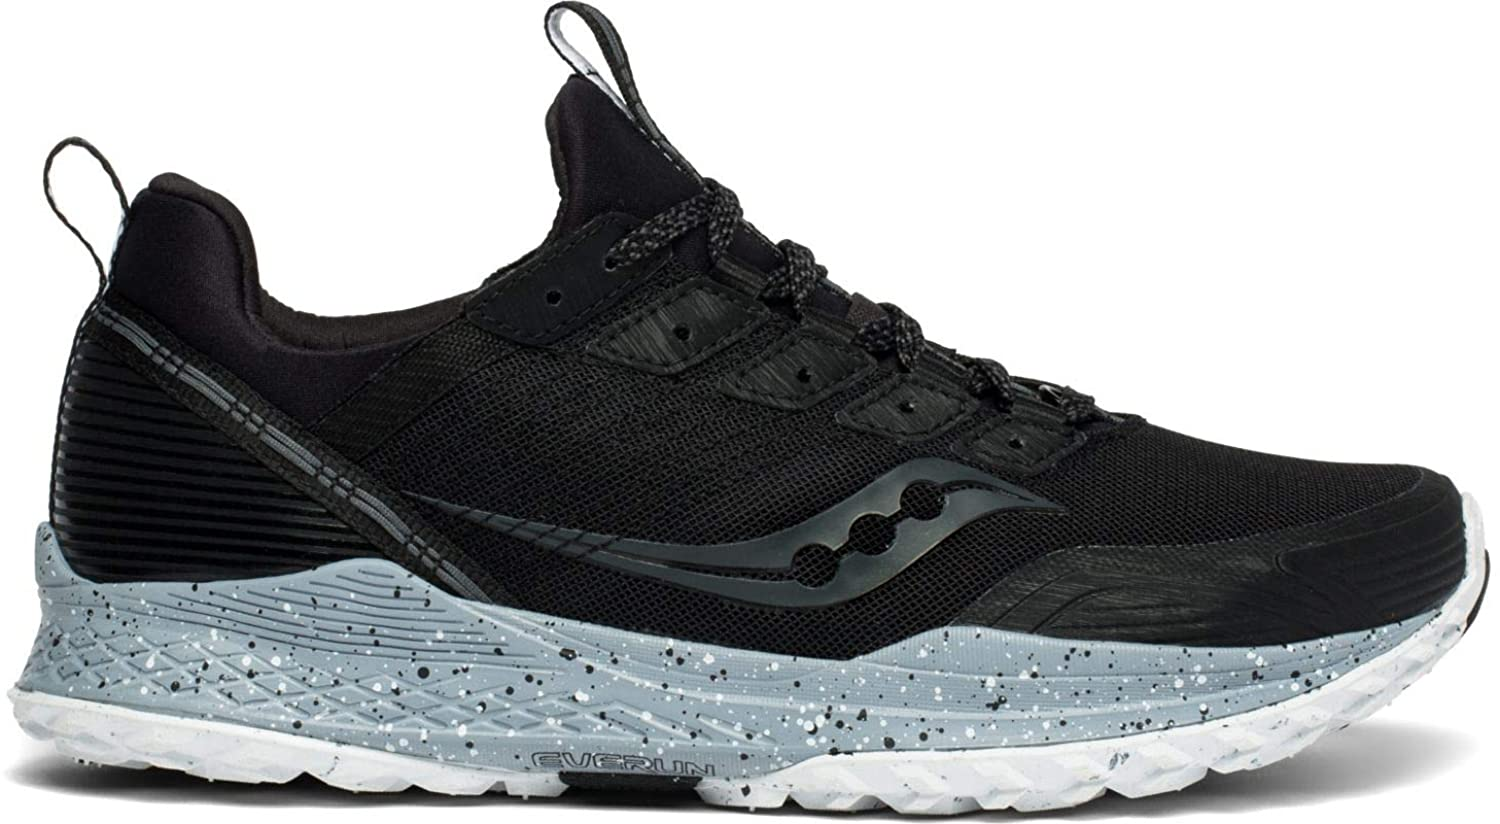 Saucony Mens Mad River TR Trail Running Shoe - Black - 10